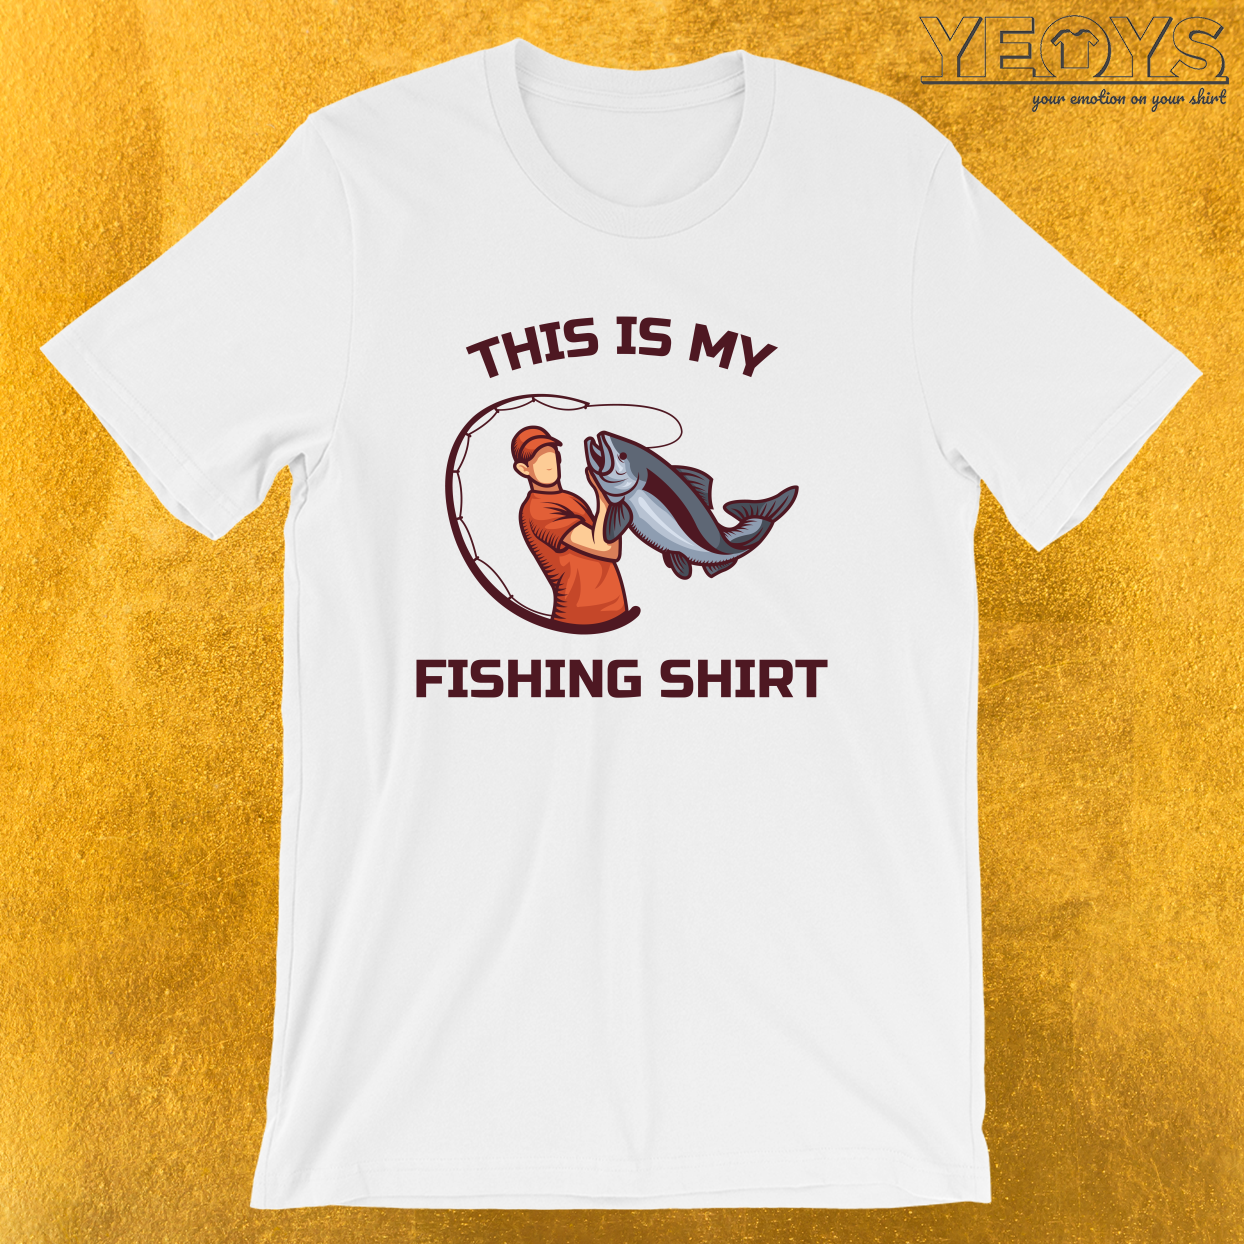 This Is My Fishing Shirt – River & Lake Fishing Tee